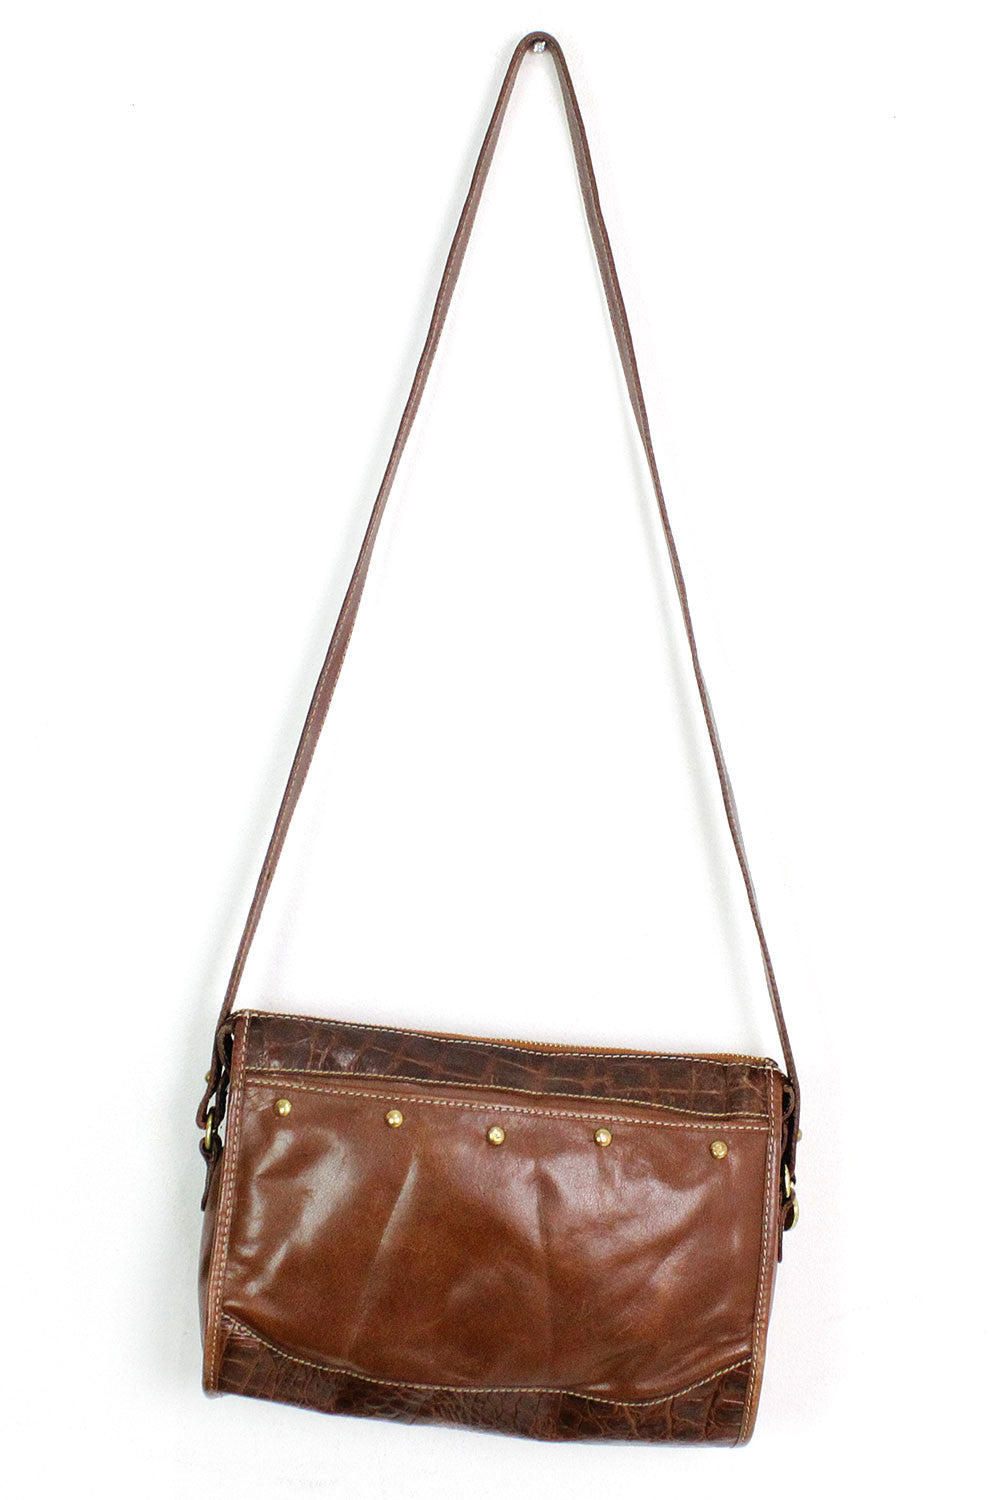 Brahmin Supple Leather Crossbody Bag